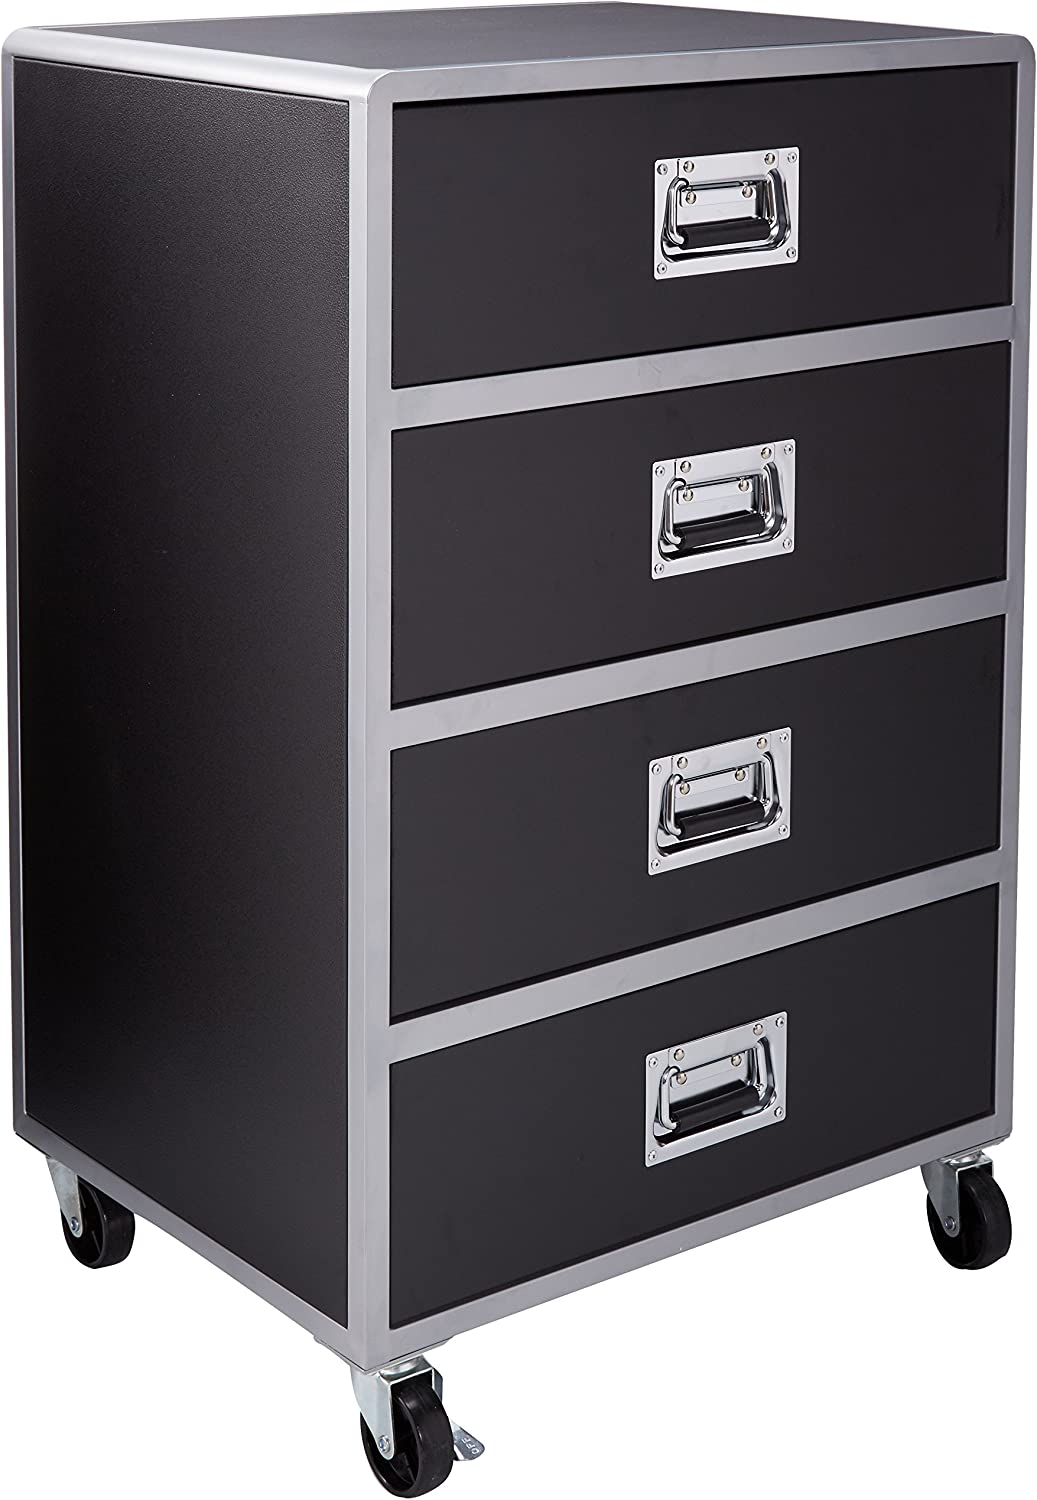 Leclair 4 Drawer Chest With Casters Black And Silver Furniture Decor